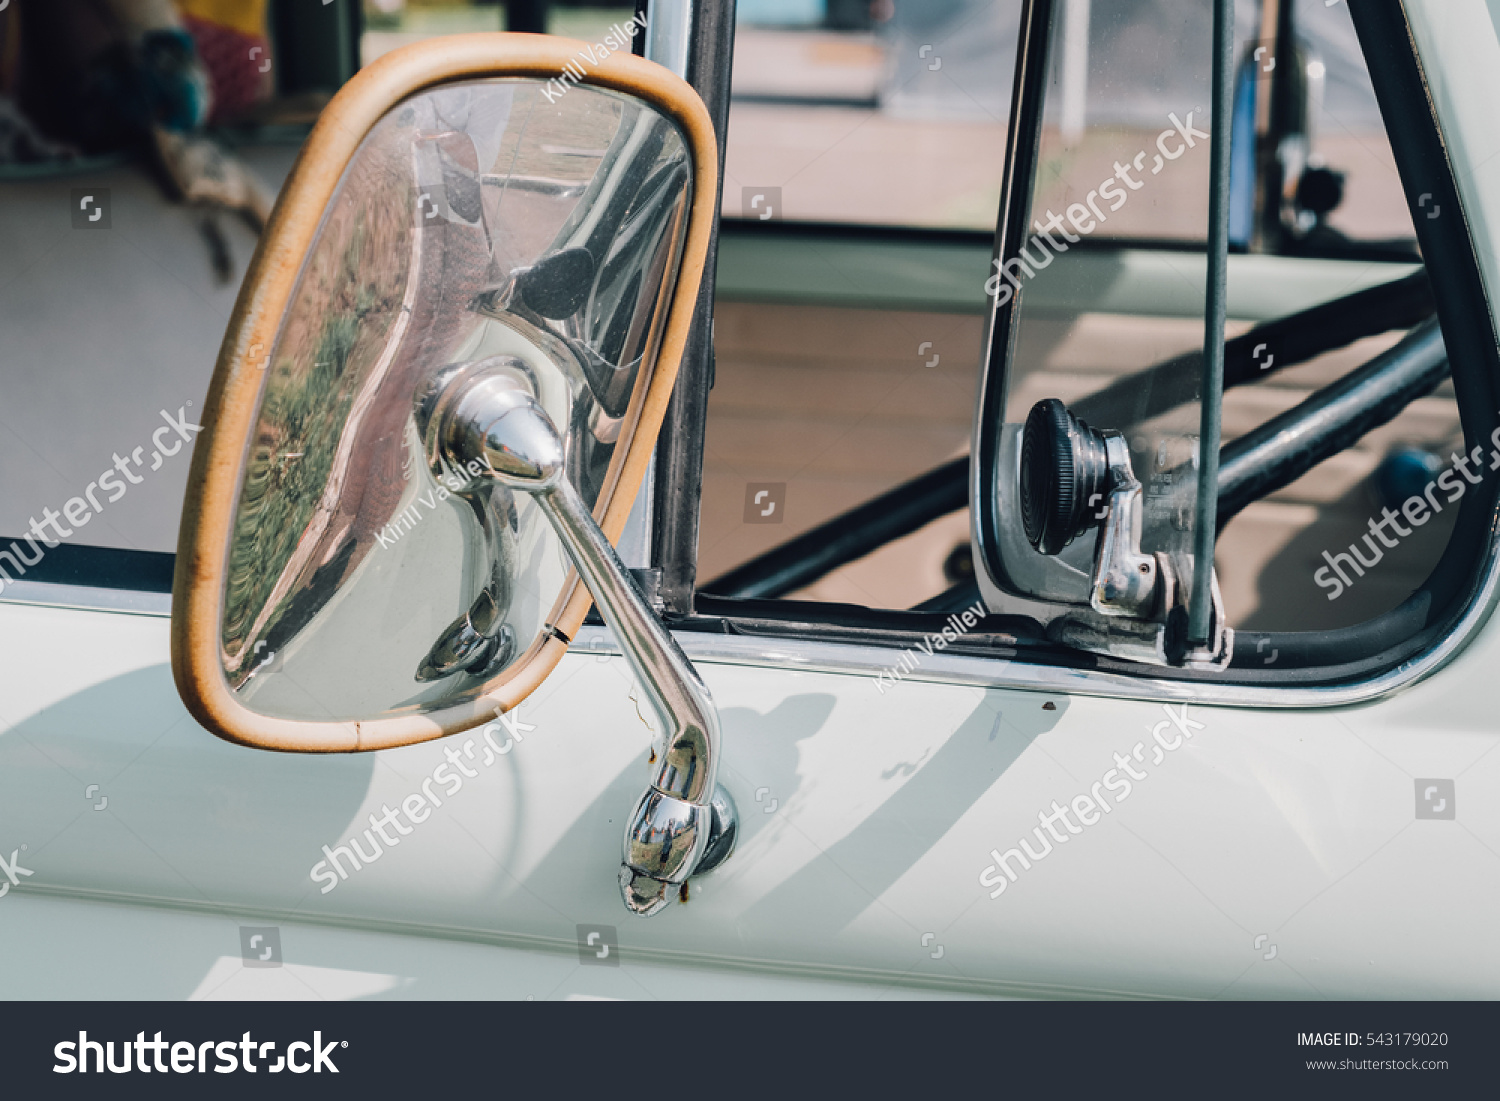 Vintage Auto Body Chrome Parts Car Stock Photo 543179020 ...